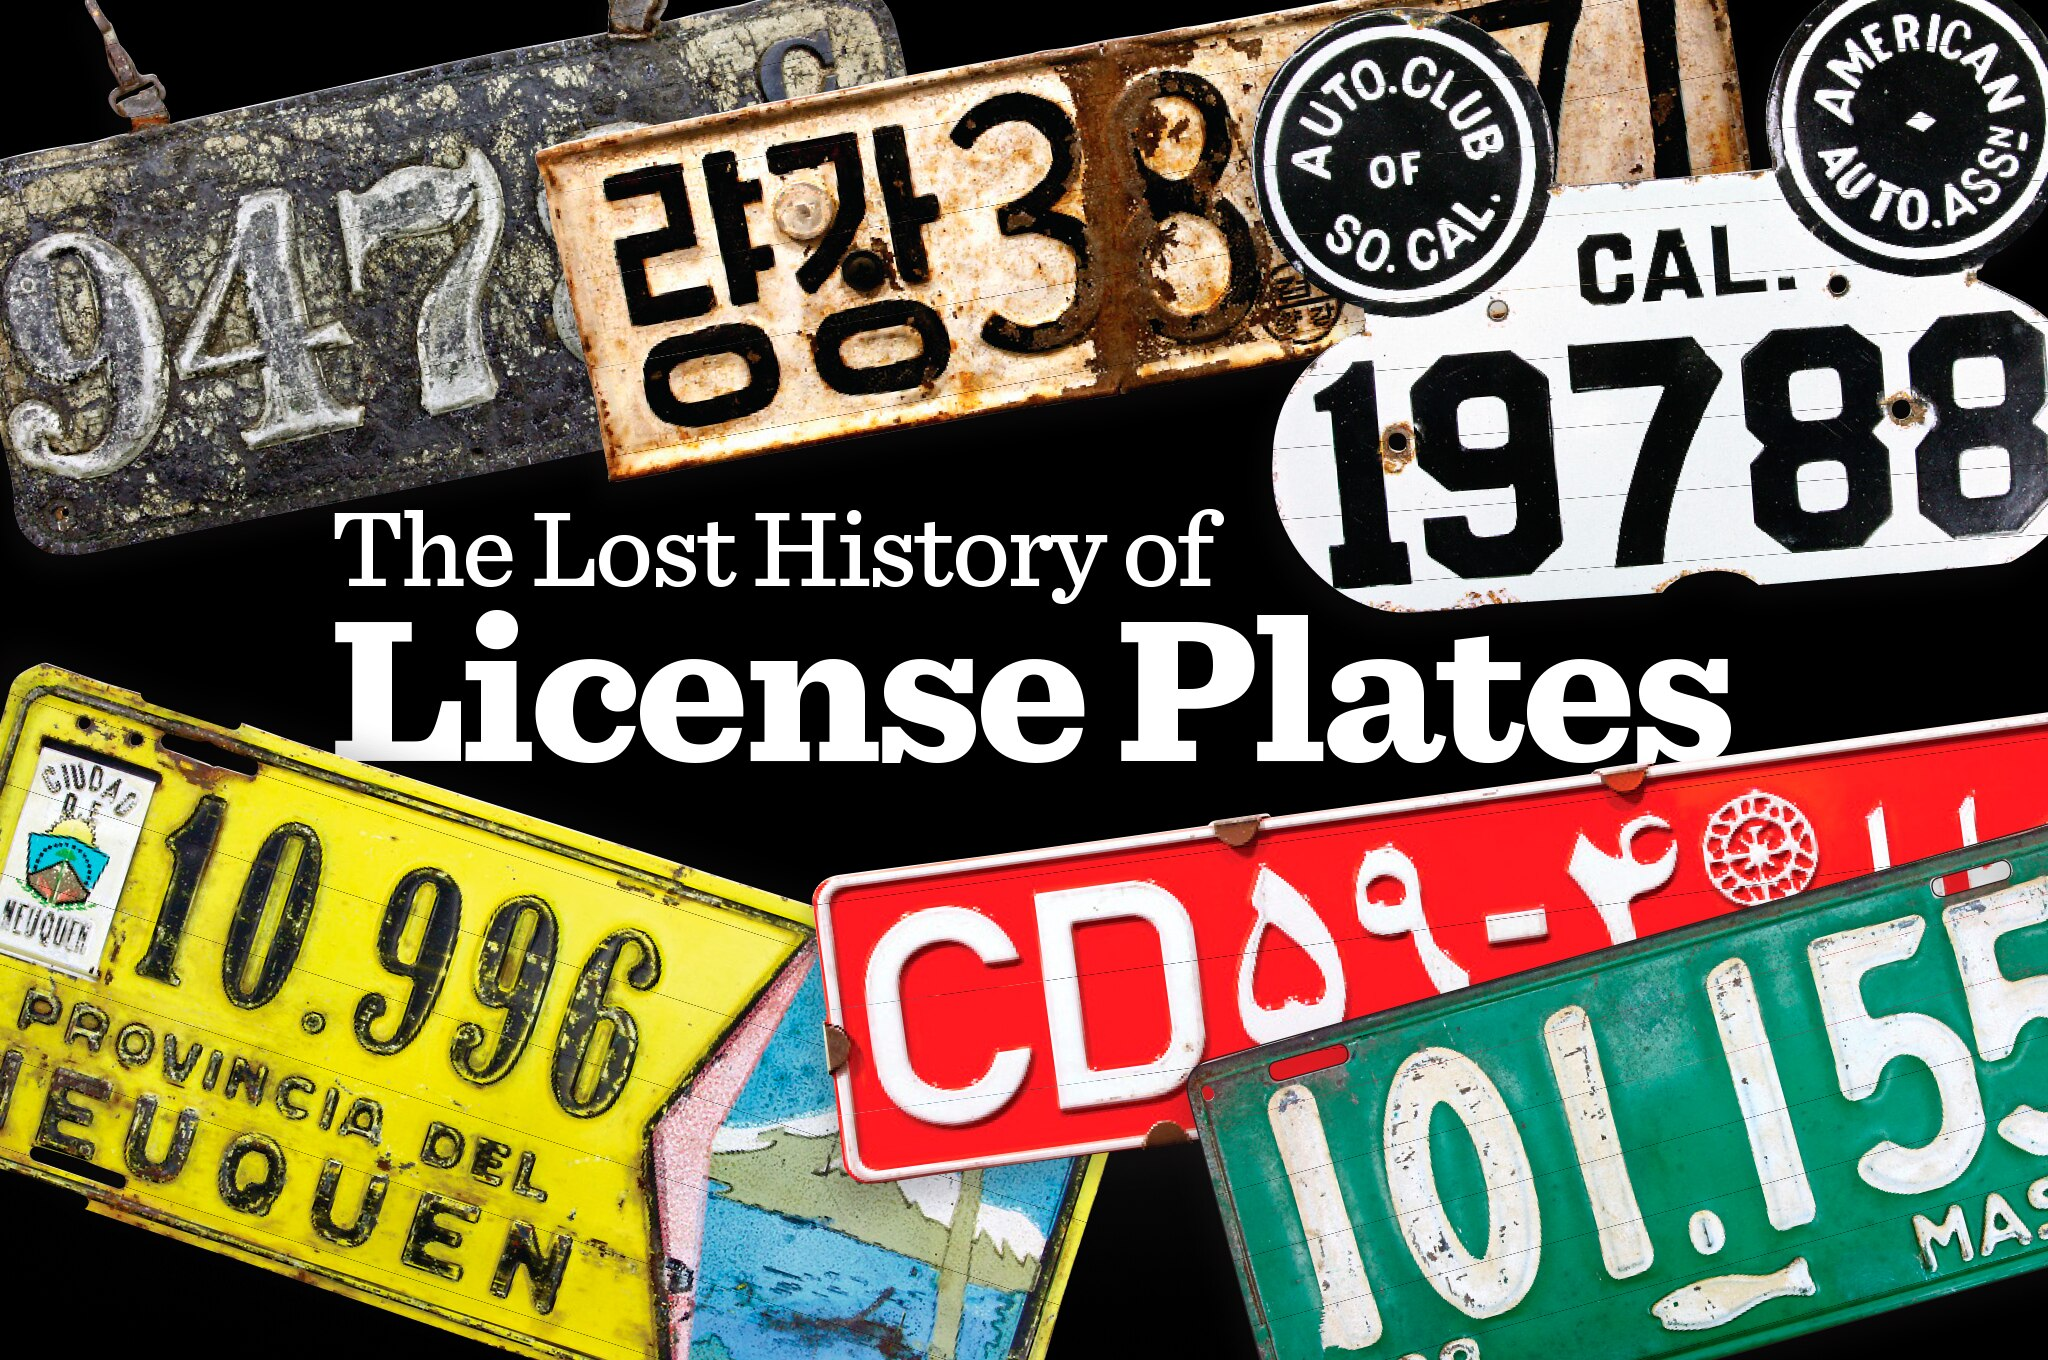 The Lost History Of License Plates Lead